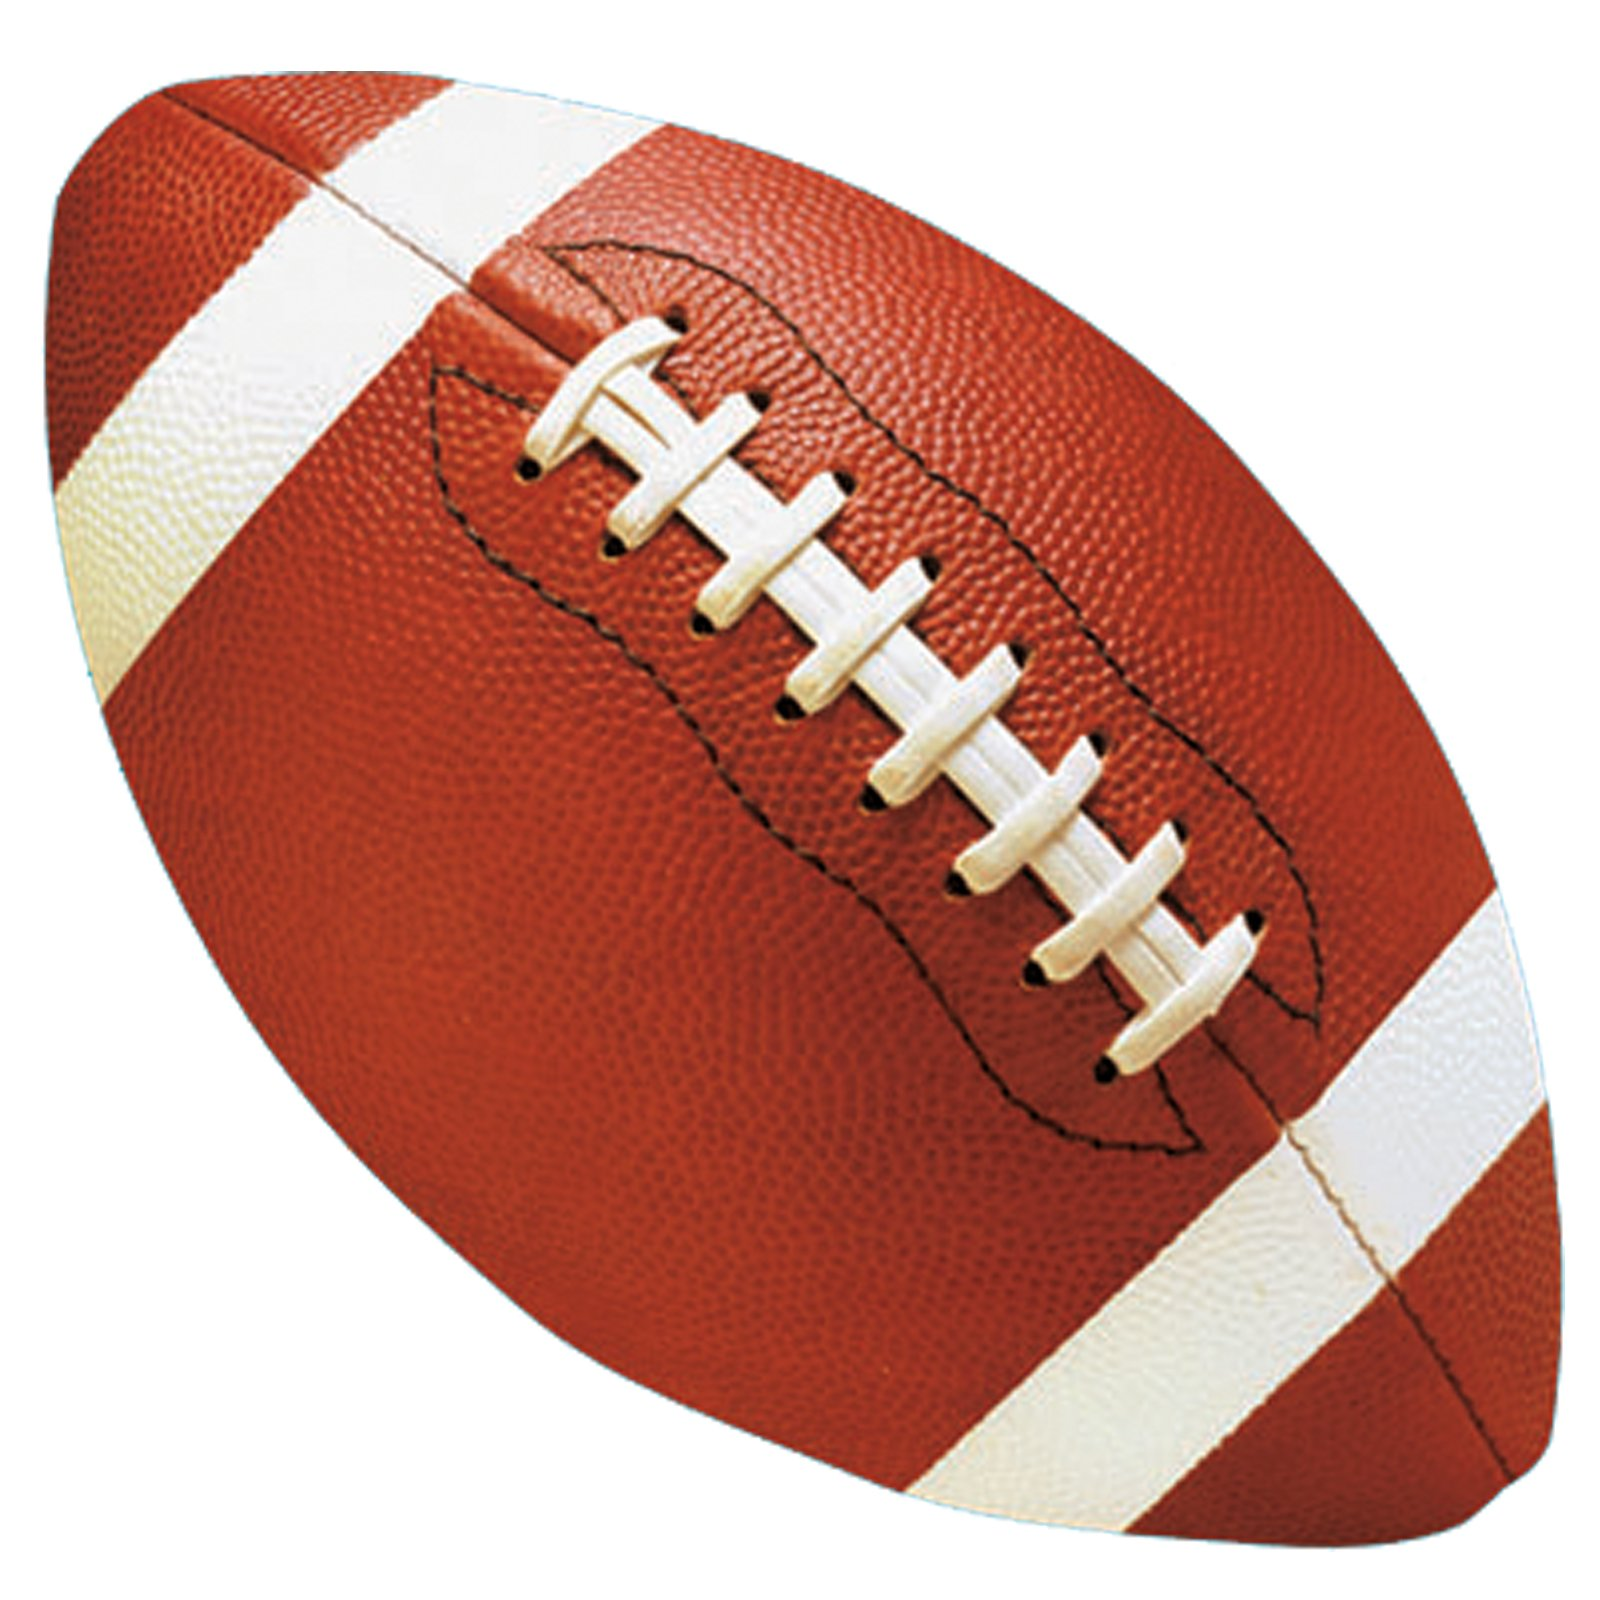 Americal Football Ball 233.68 Kb